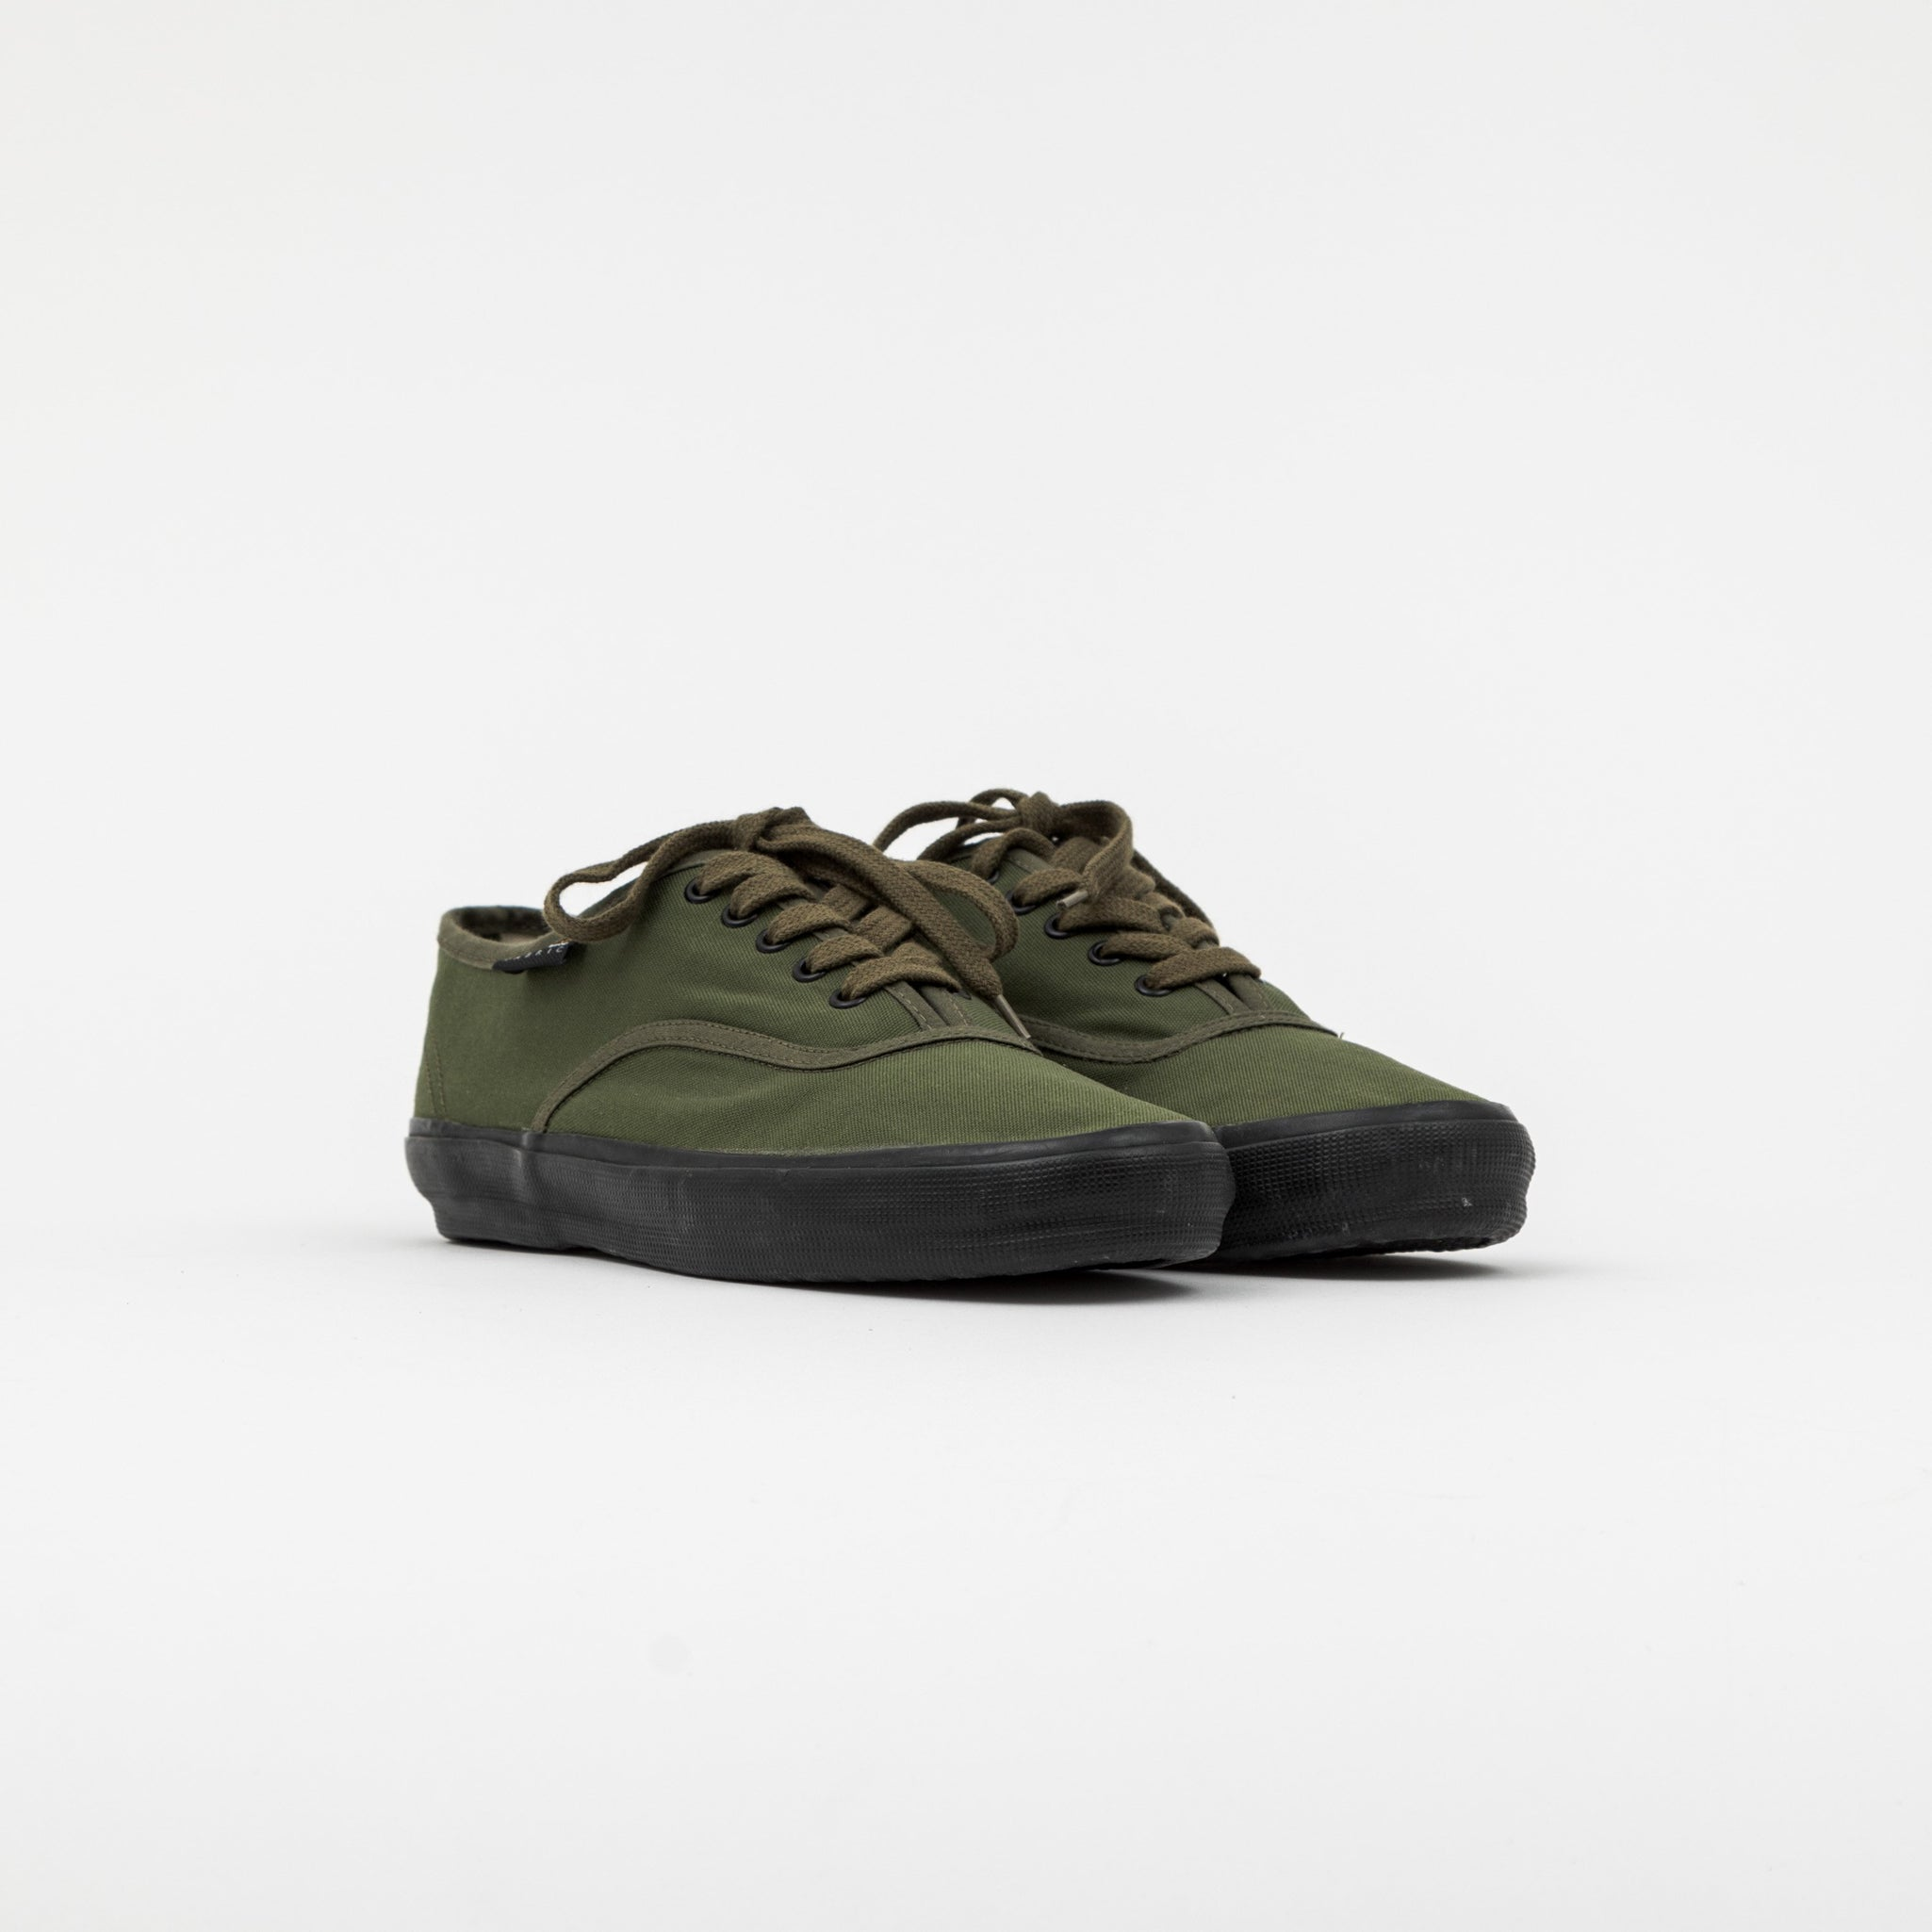 ROF-US-NAVY-MILITARY-TRAINER-OLIVE-SUNNYSIDERS-2.jpg